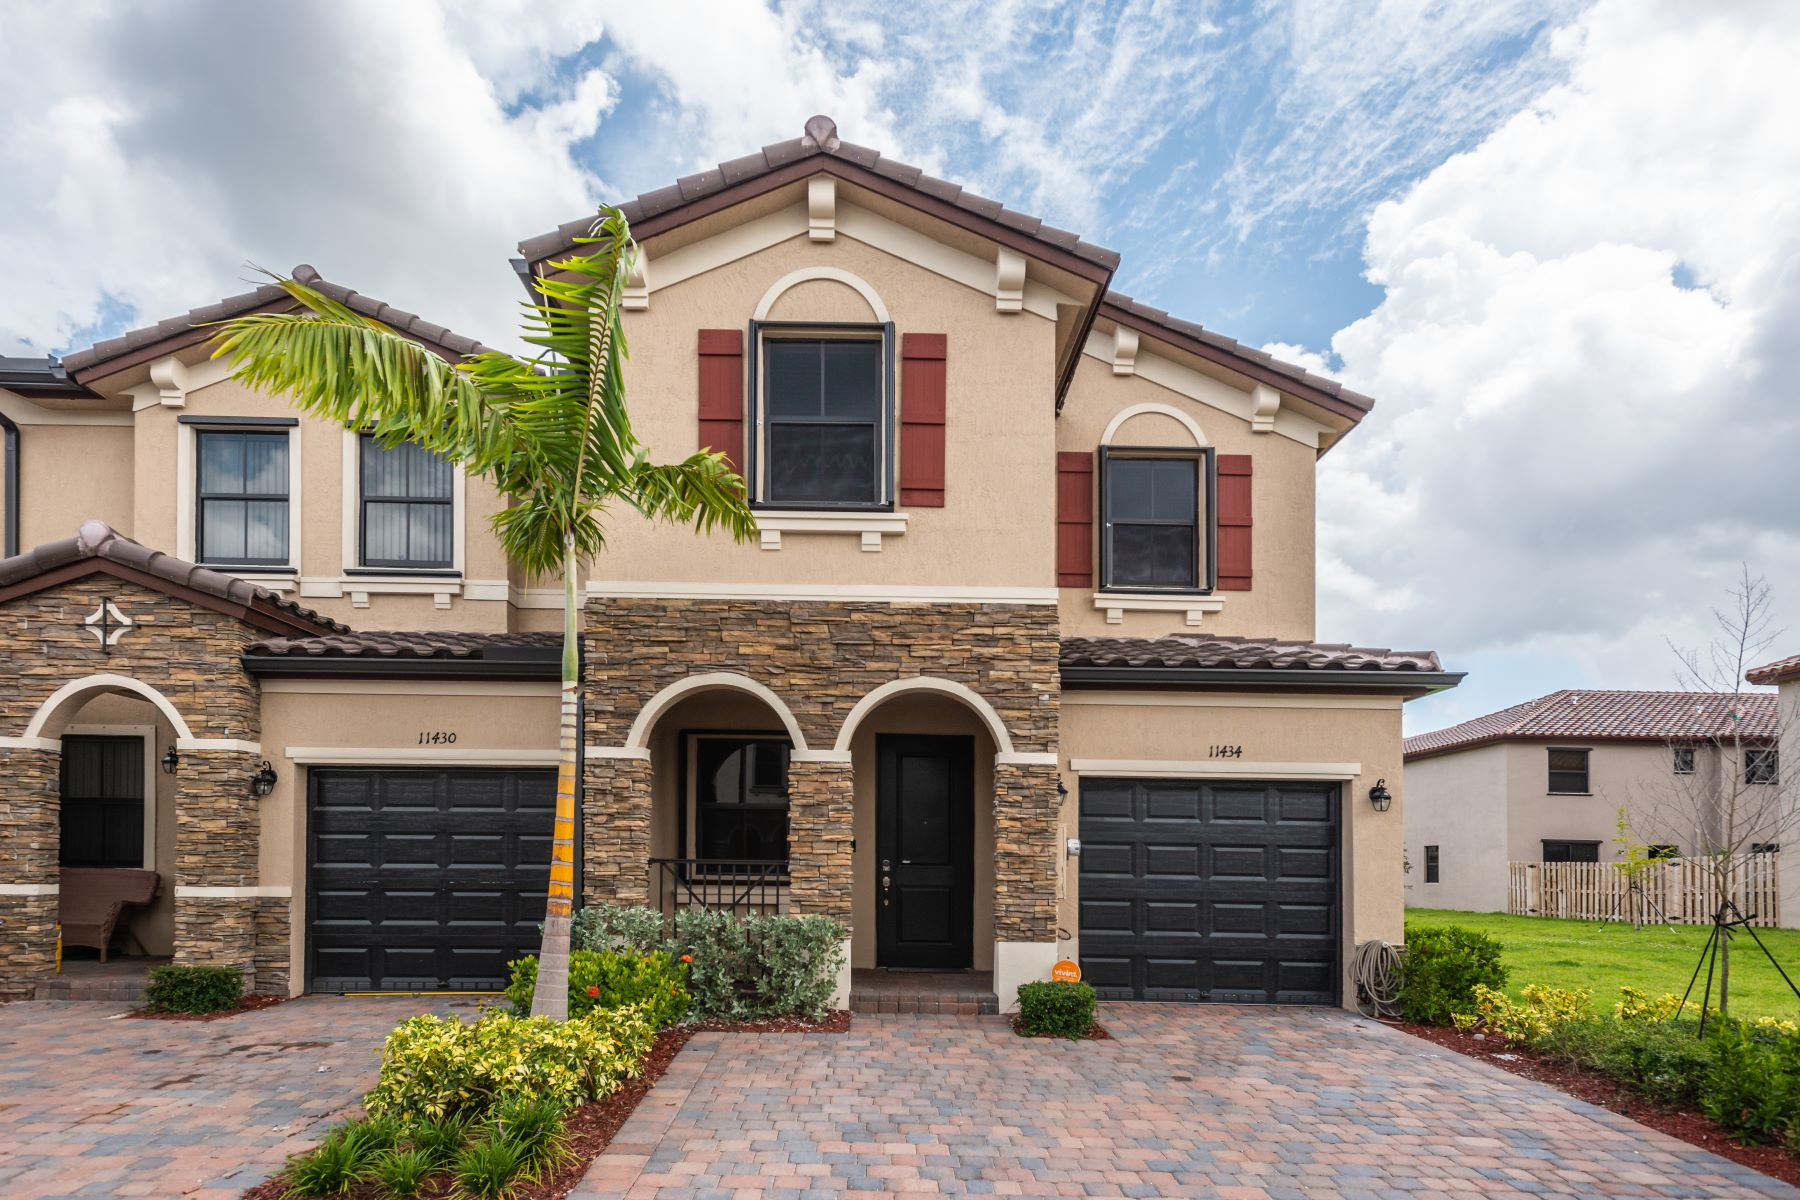 Townhouse for Sale at 11434 Sw 252nd Ter 11434 Sw 252nd Ter Homestead, Florida 33032 United States